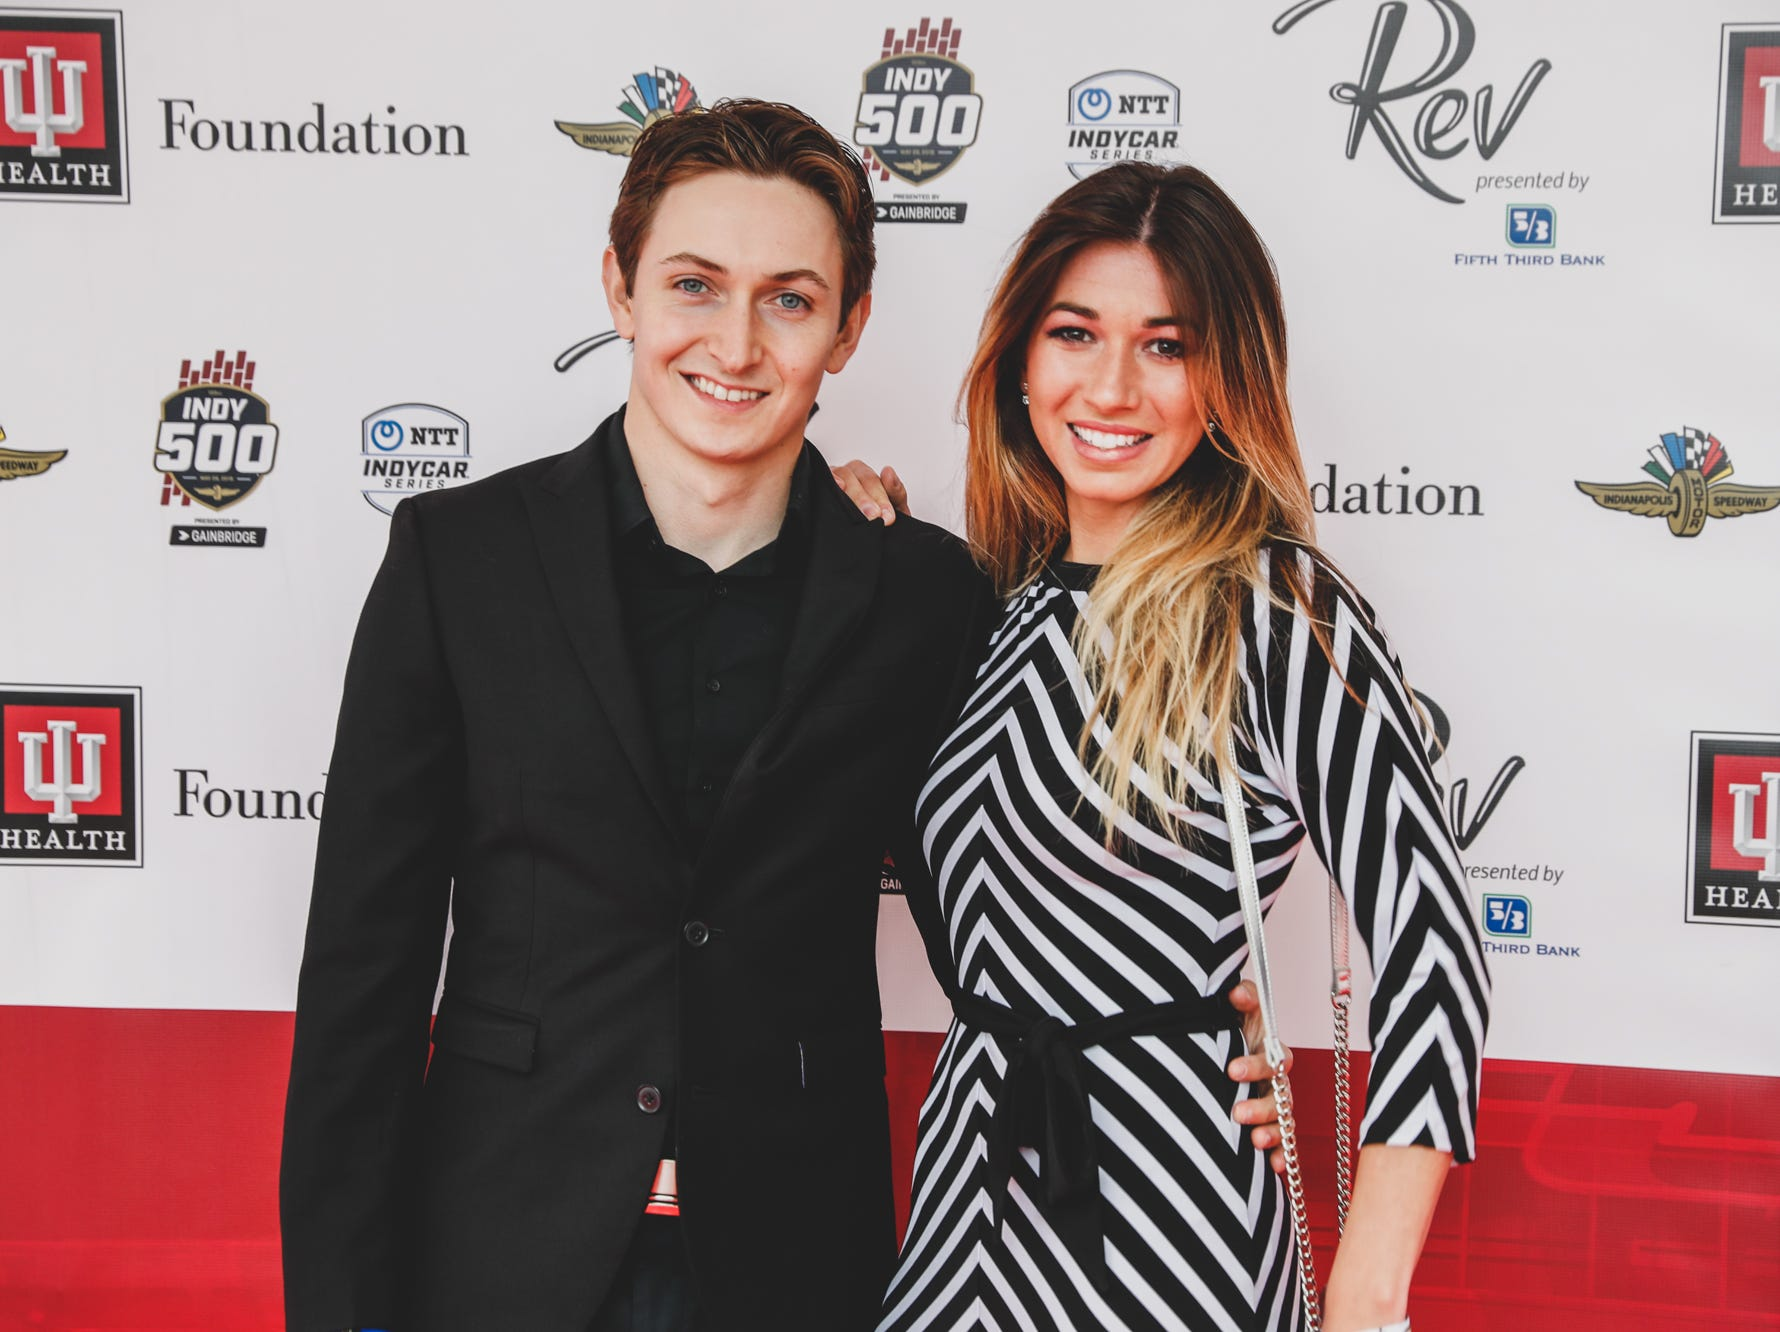 IndyCar driver Zach Veach and Kate McConnell walk the red carpet at the Rev Indy fundraiser, held at the Indianapolis Motor Speedway on Saturday, May 4, 2019. Funds raised support the IU Health Foundation statewide and the IU Health Emergency Medical Center at IMS.